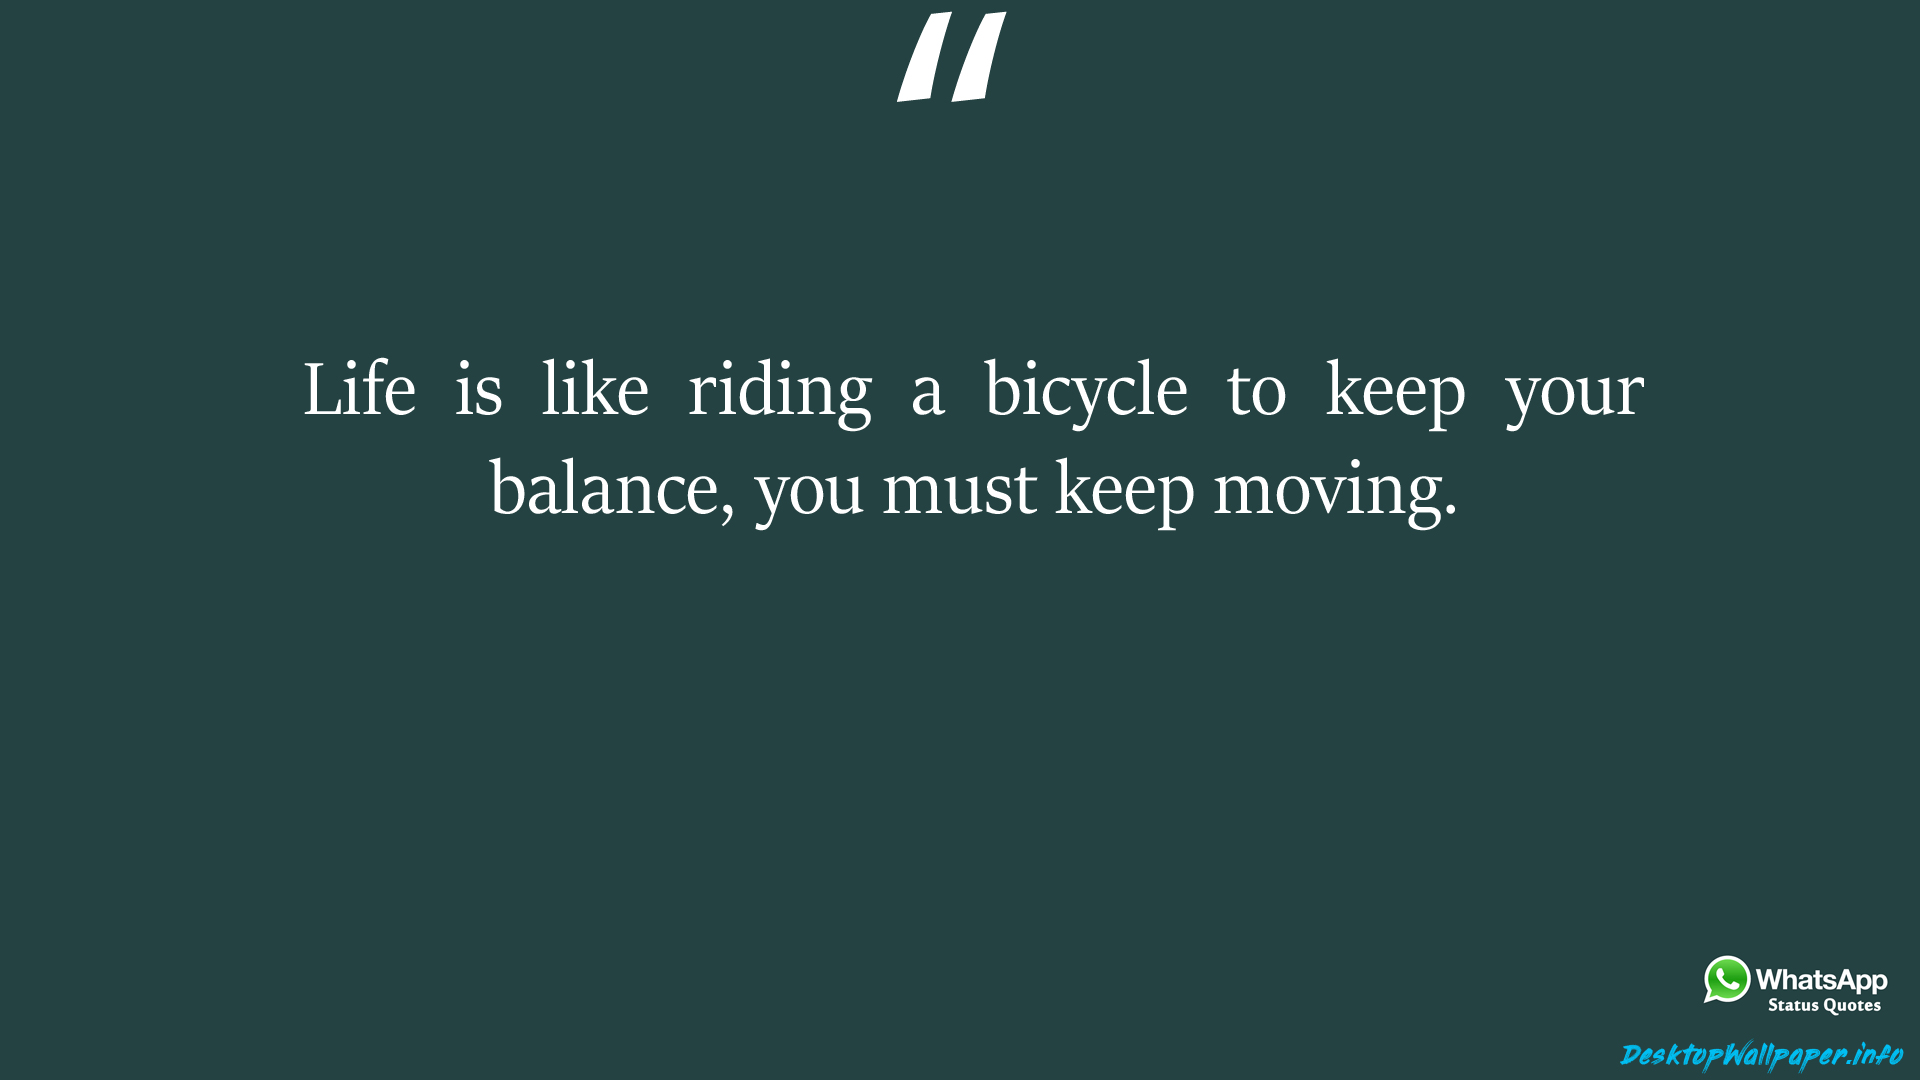 Life is like riding a bicycle to keep your balance you